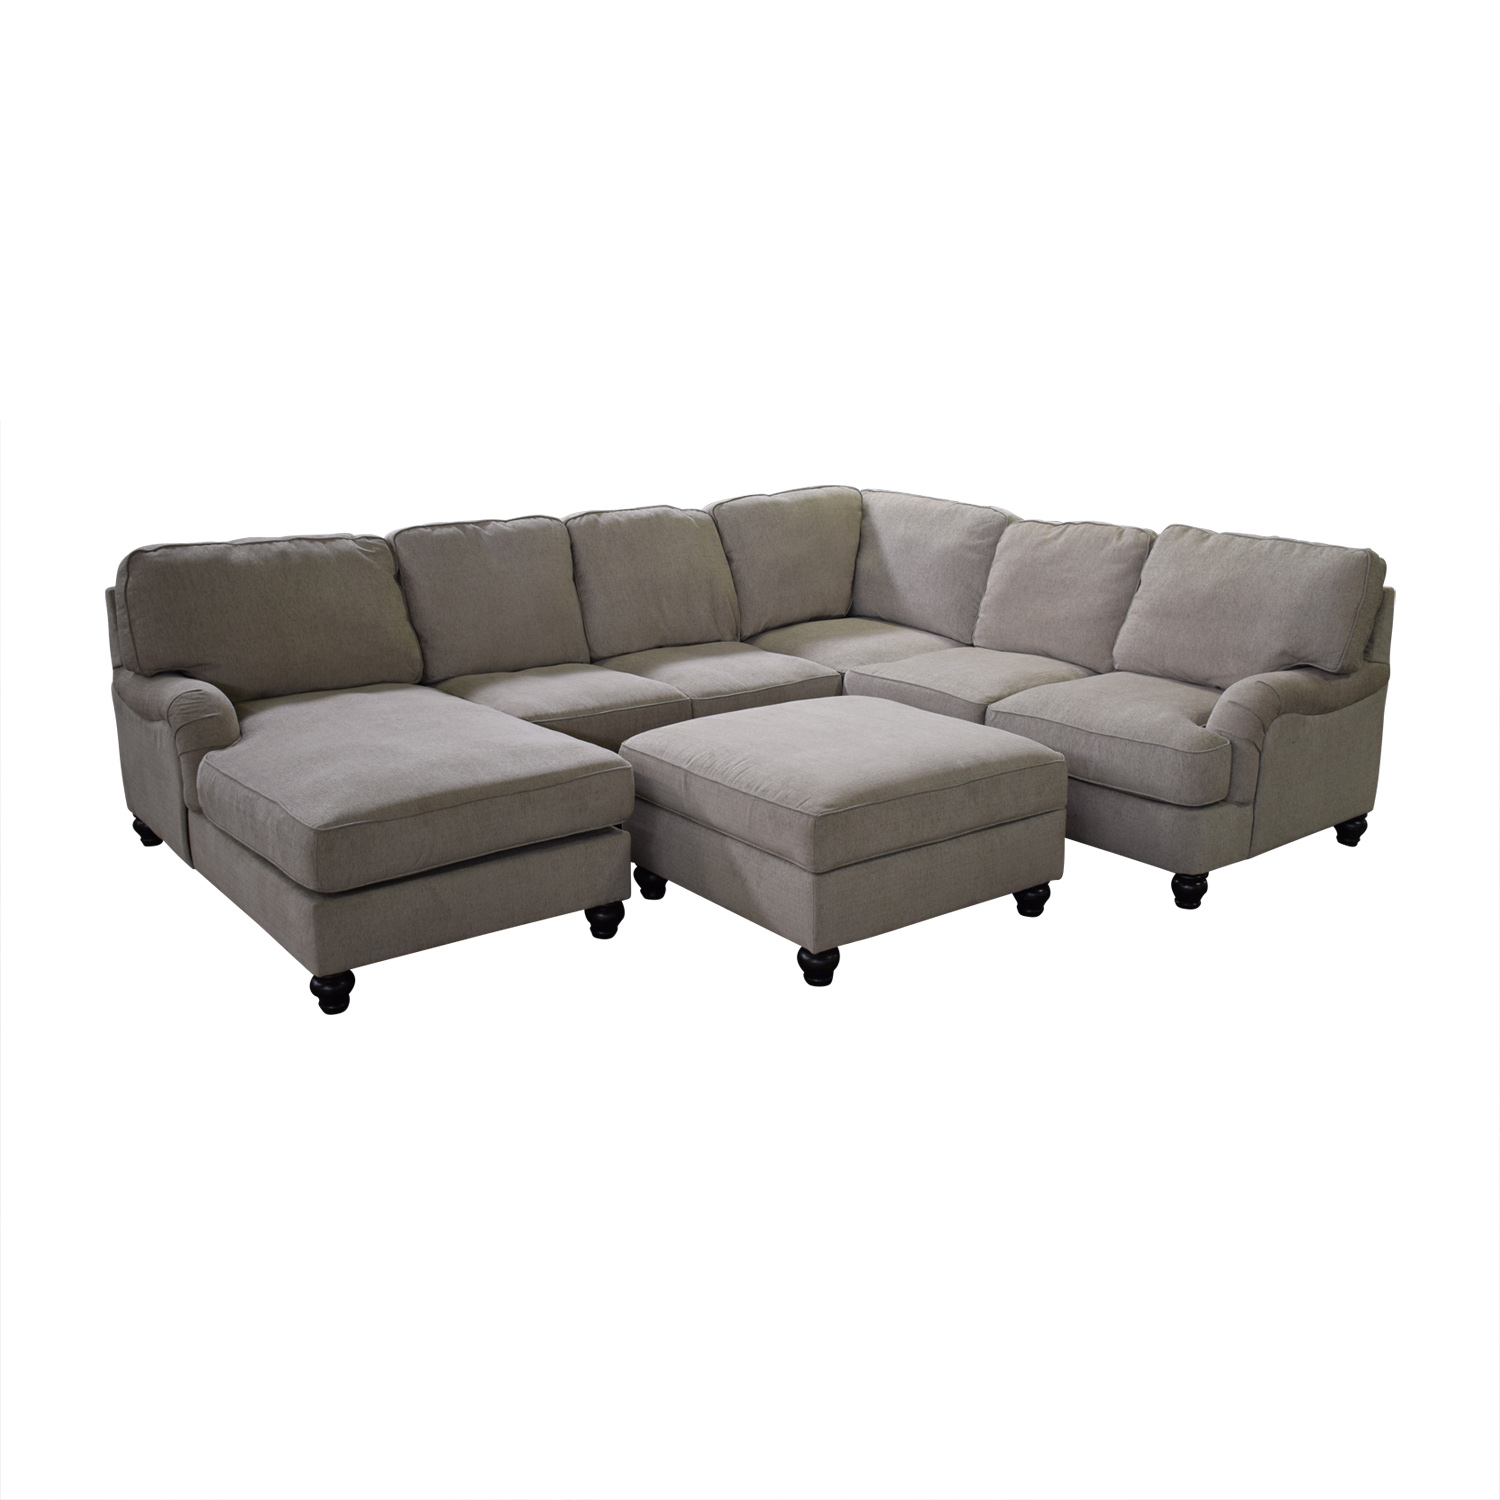 Ashley Furniture Chaise Sectional Sofa Ashley Furniture